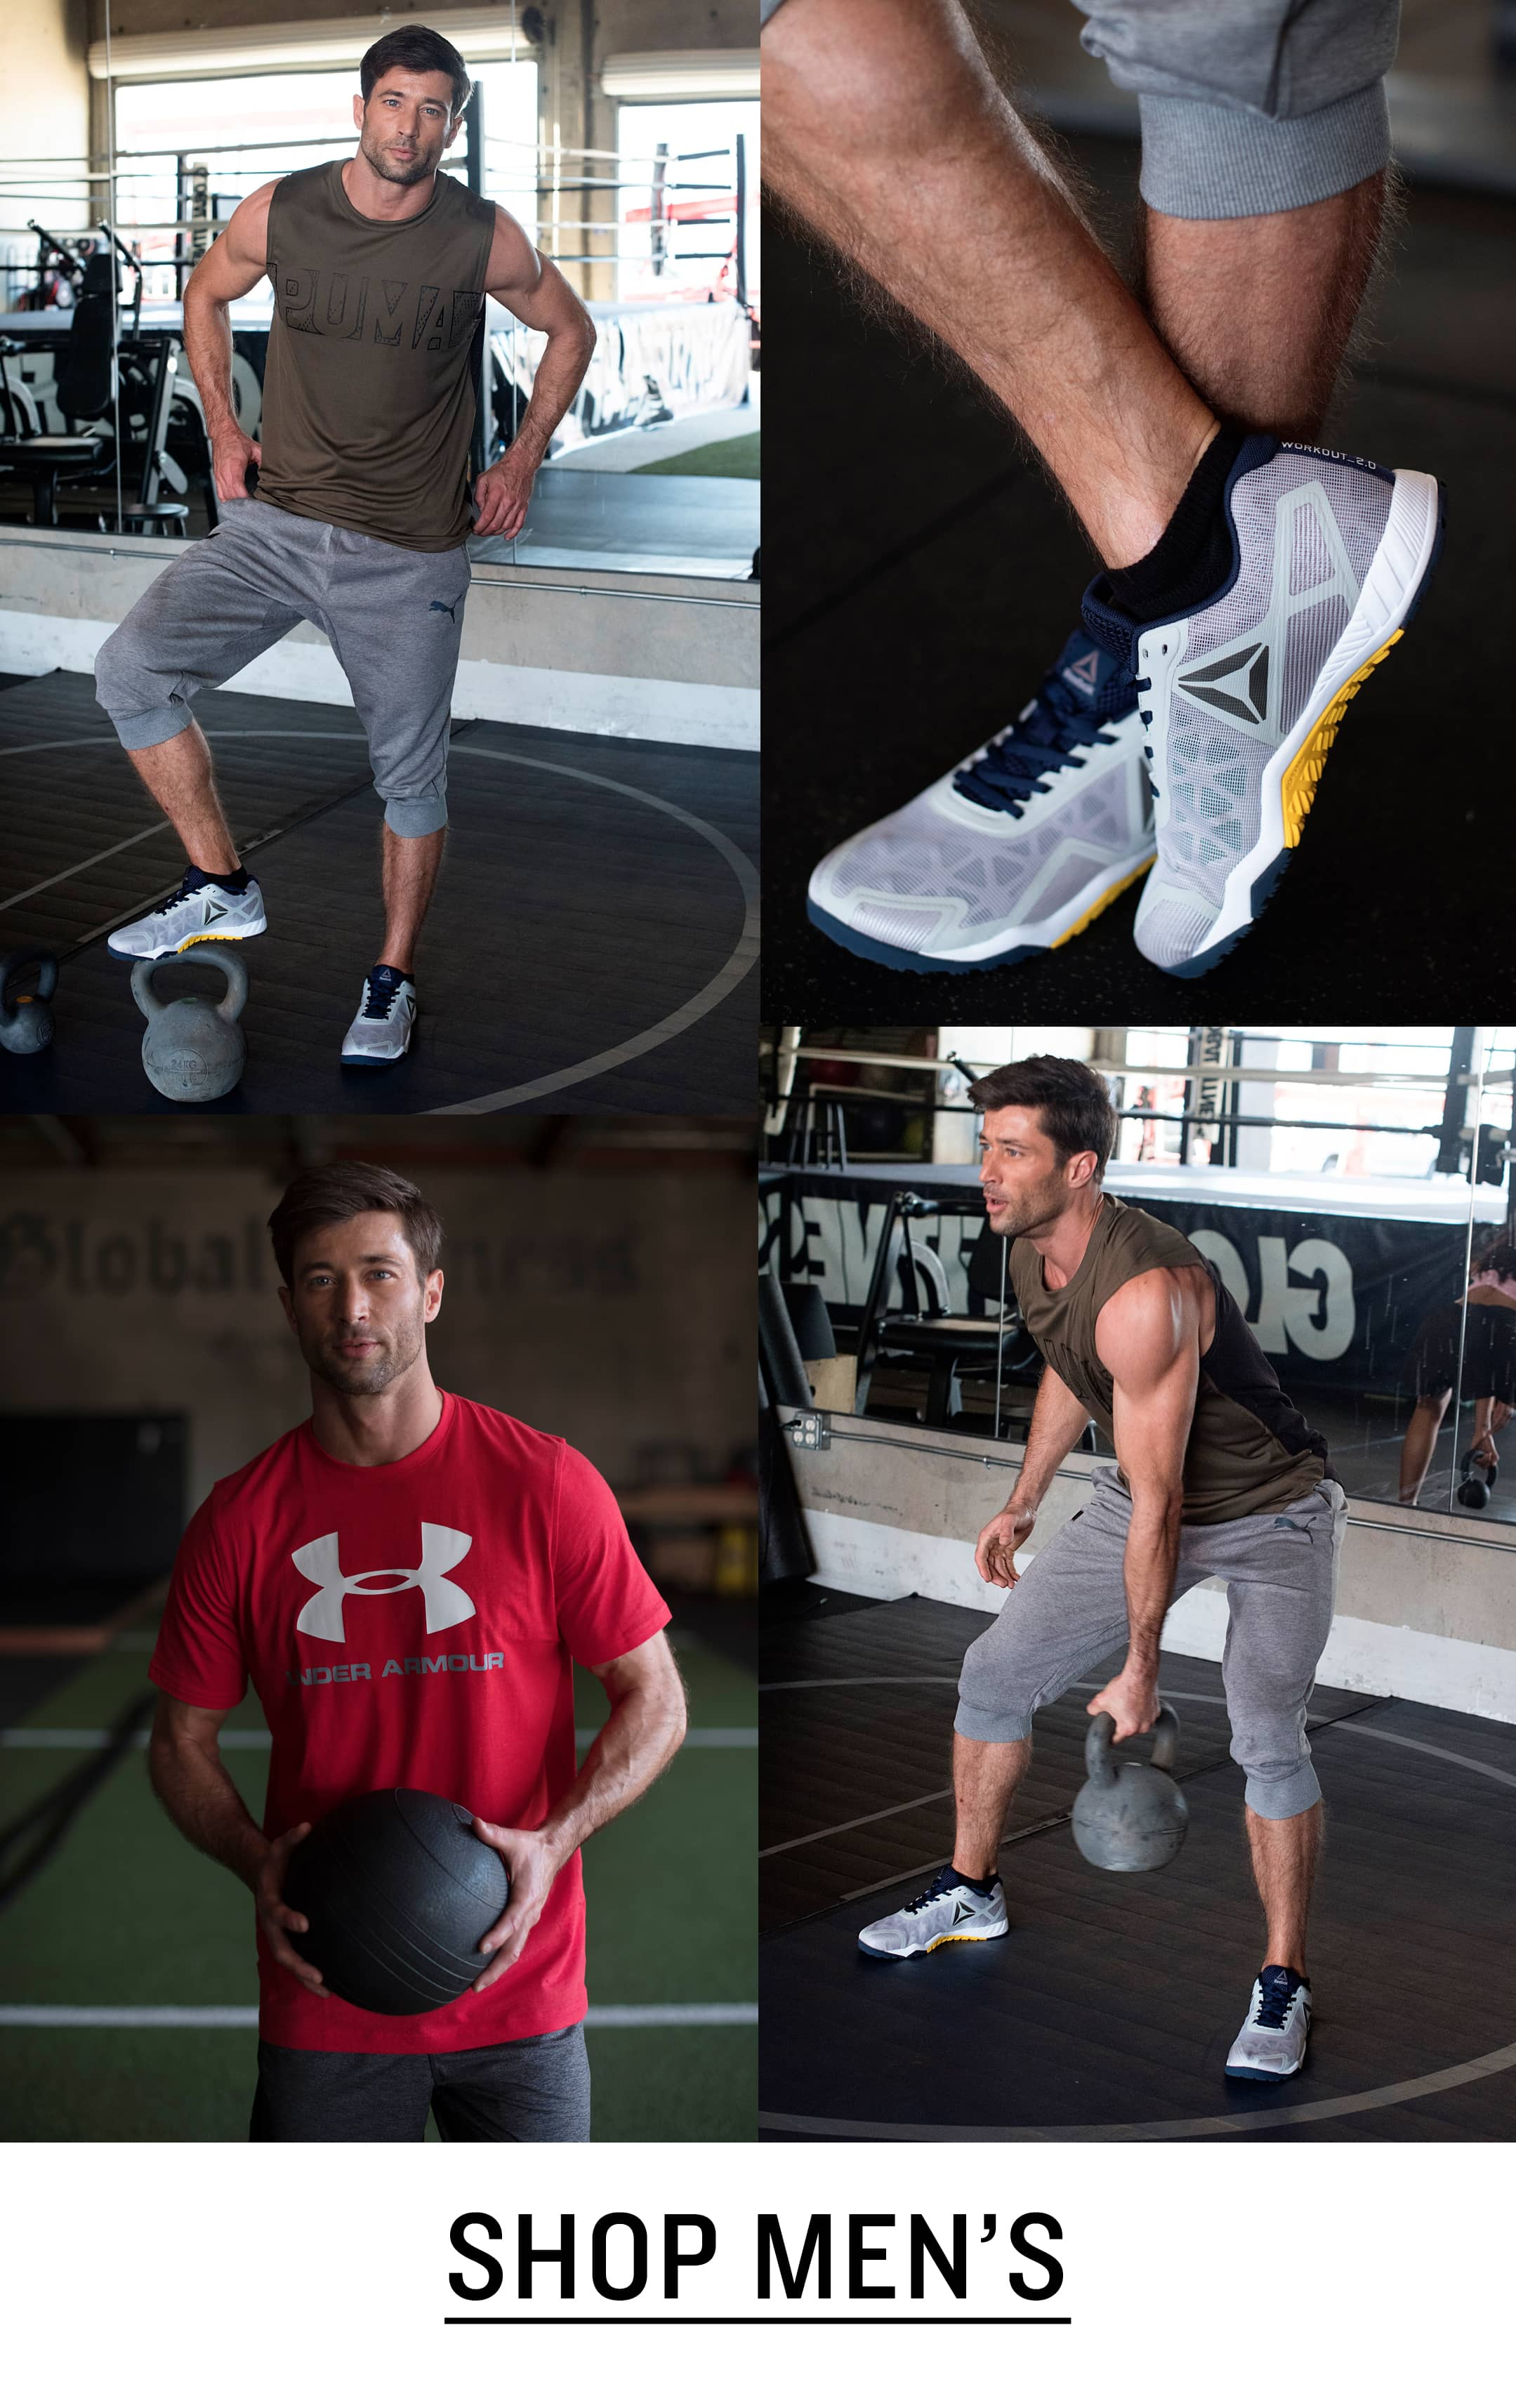 Men's Cross-Training Shoes and Clothing